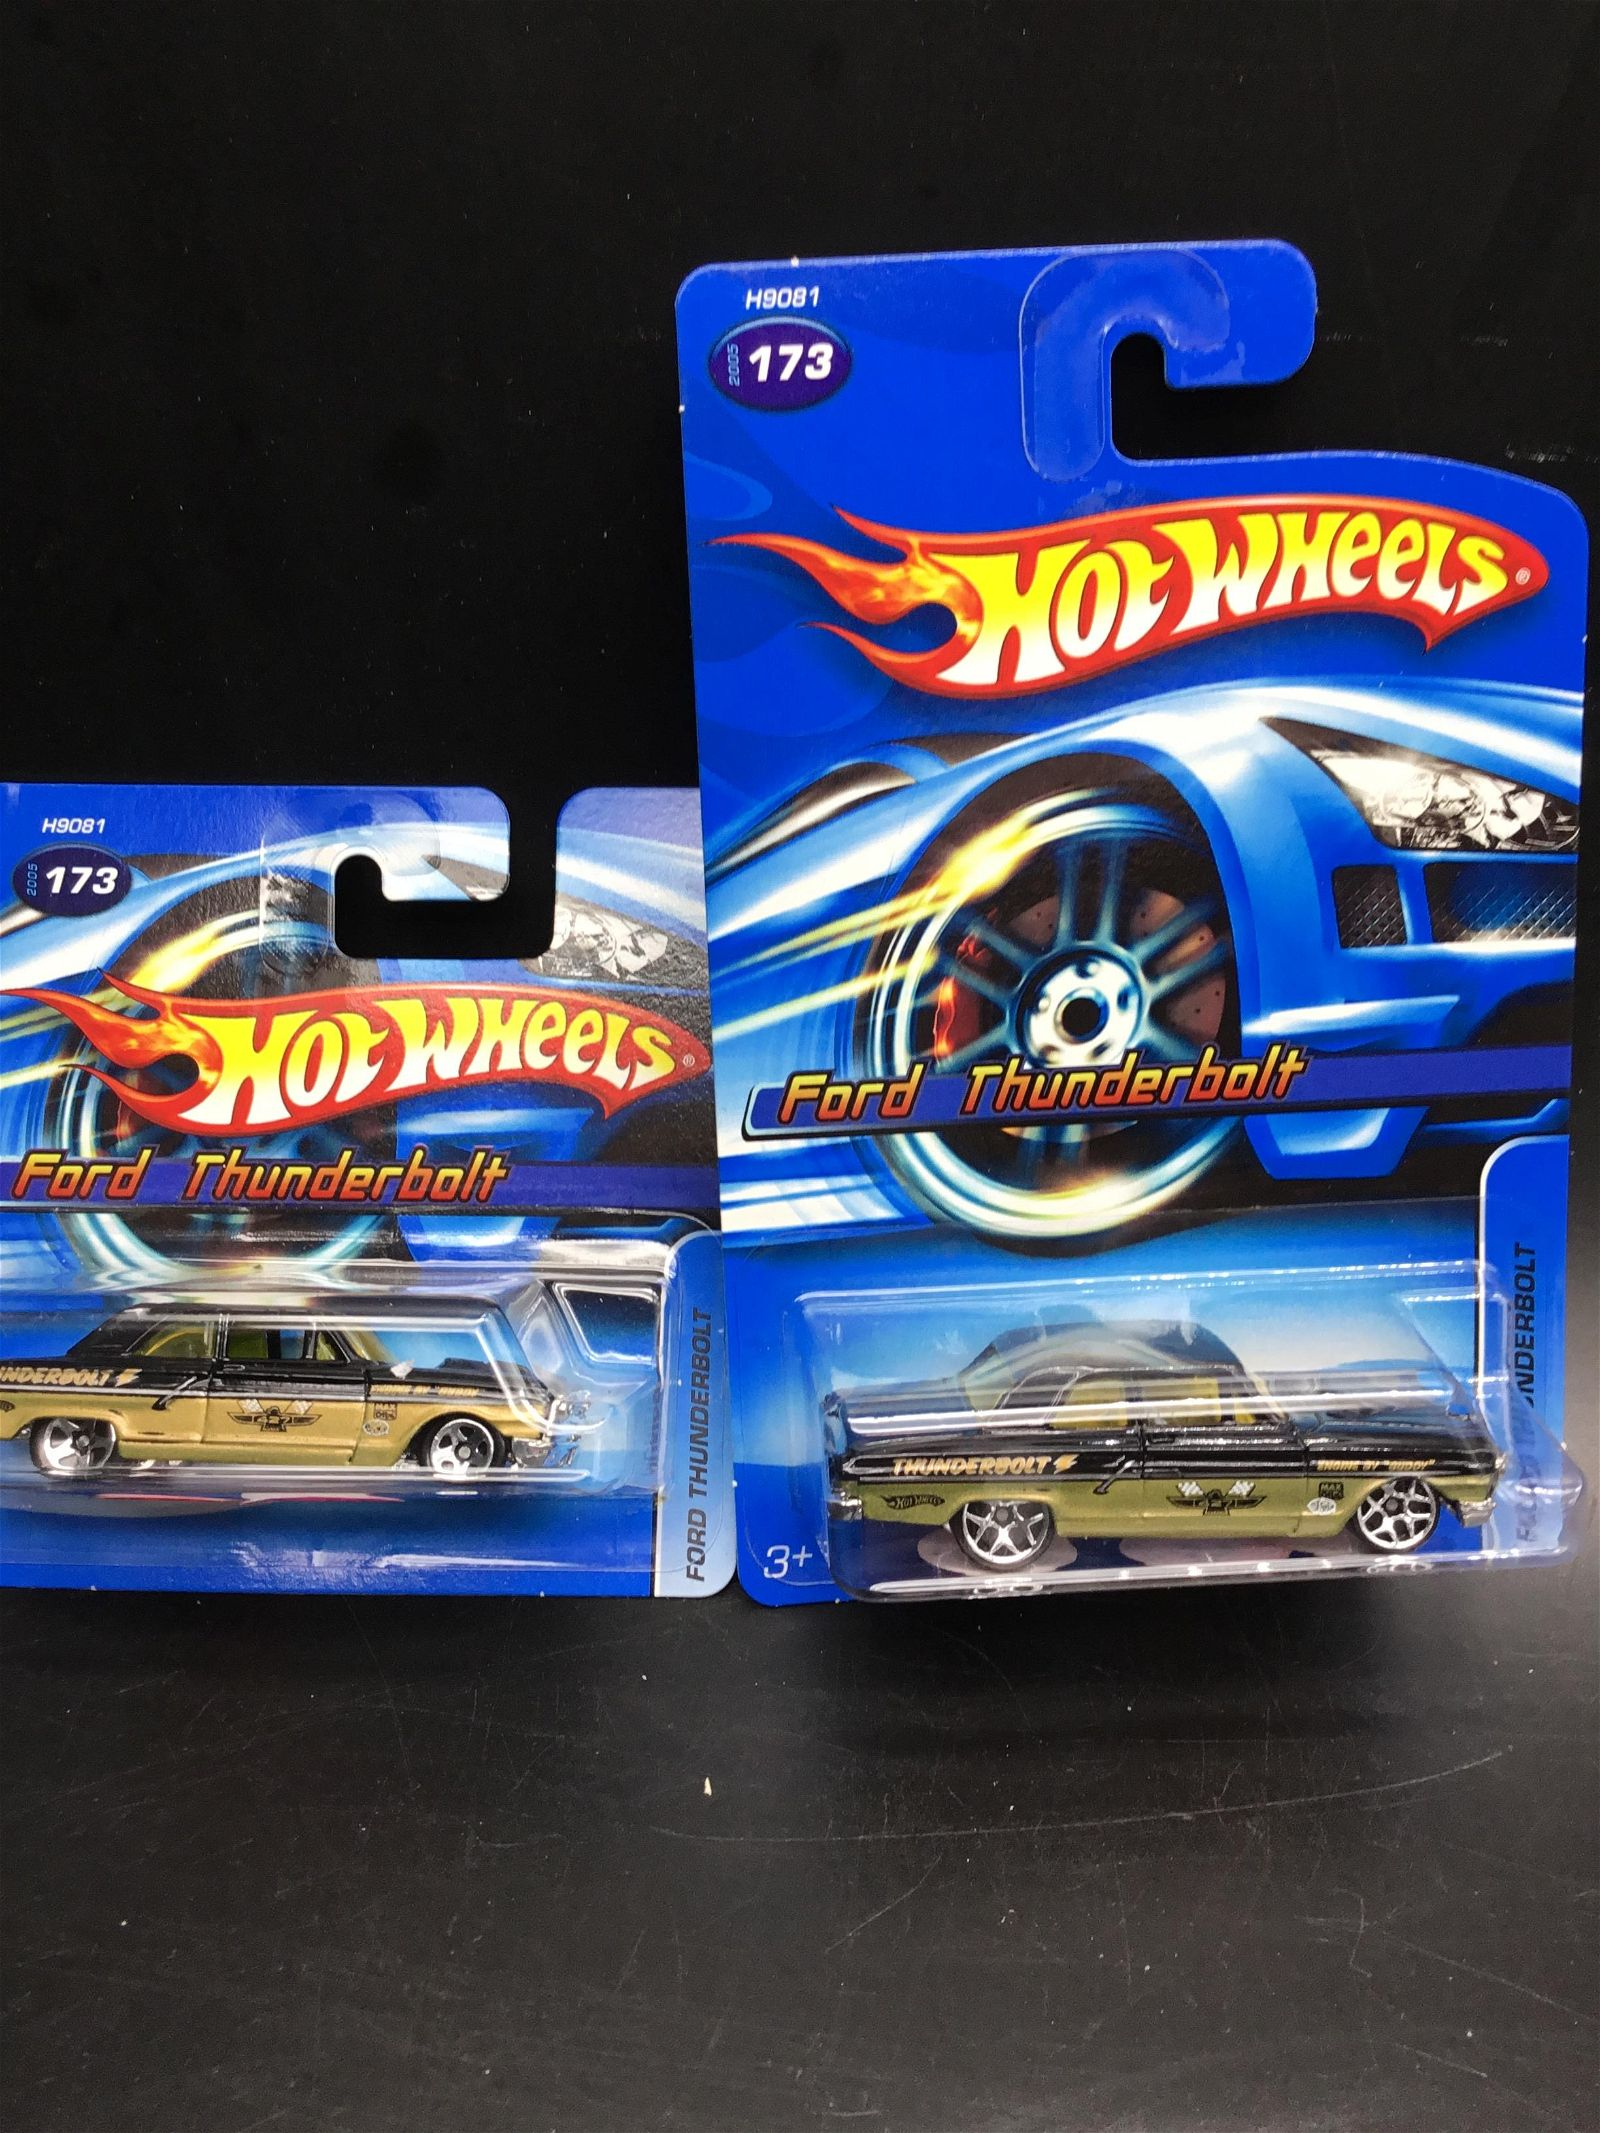 Set of 2 of #173 Ford Thunderbolt